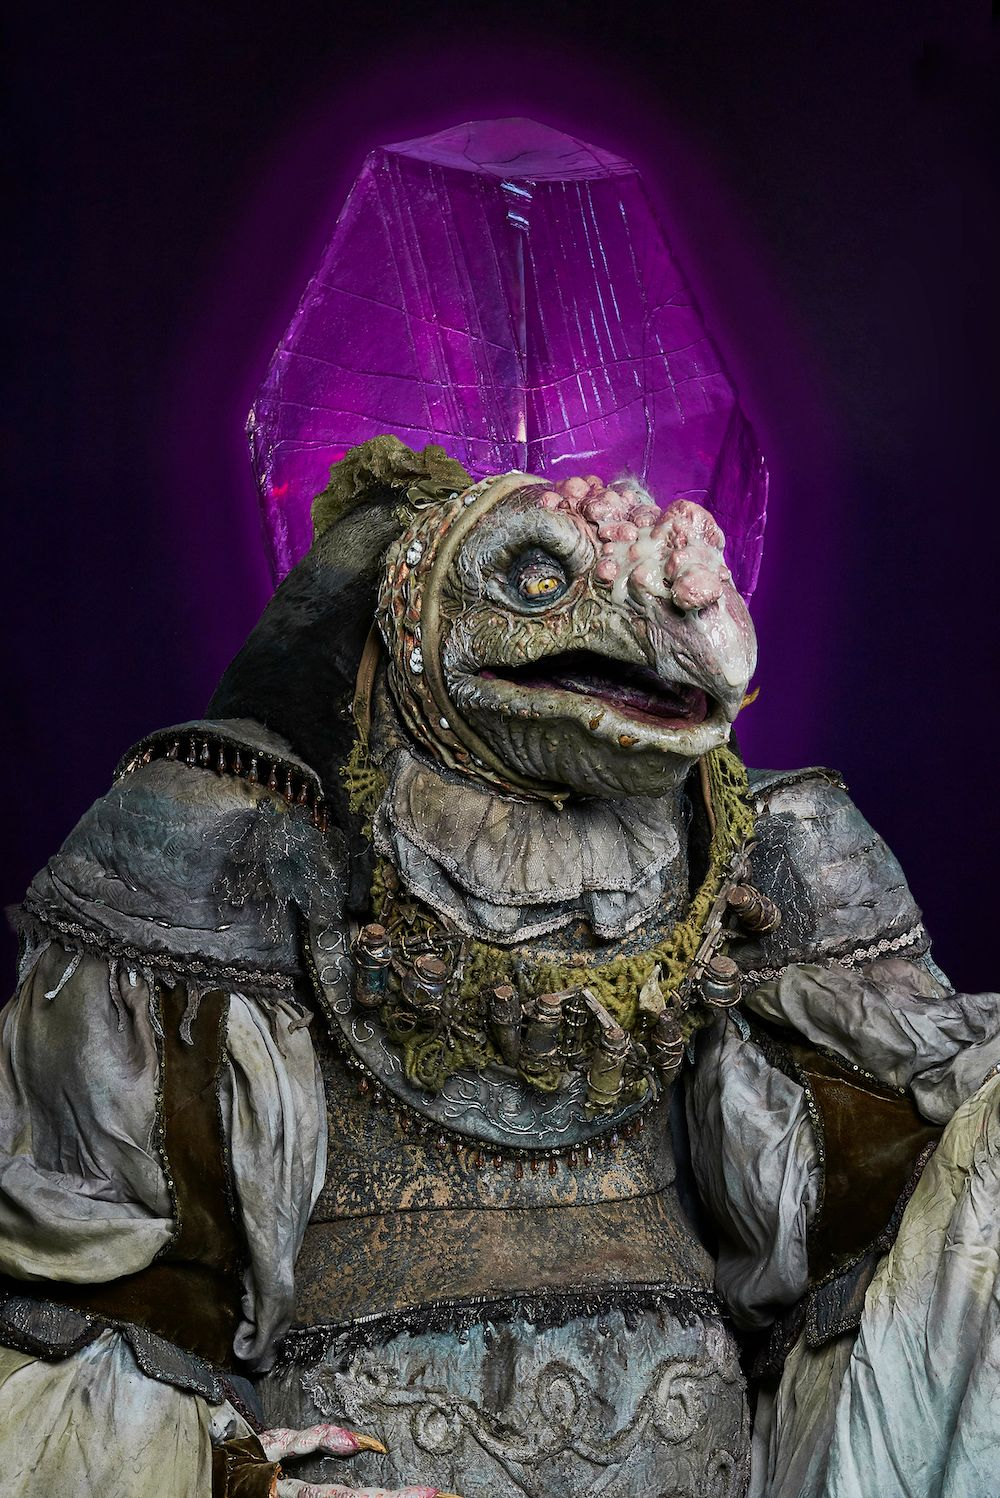 Dark Crystal Netflix Series Cast and Characters Revealed in New